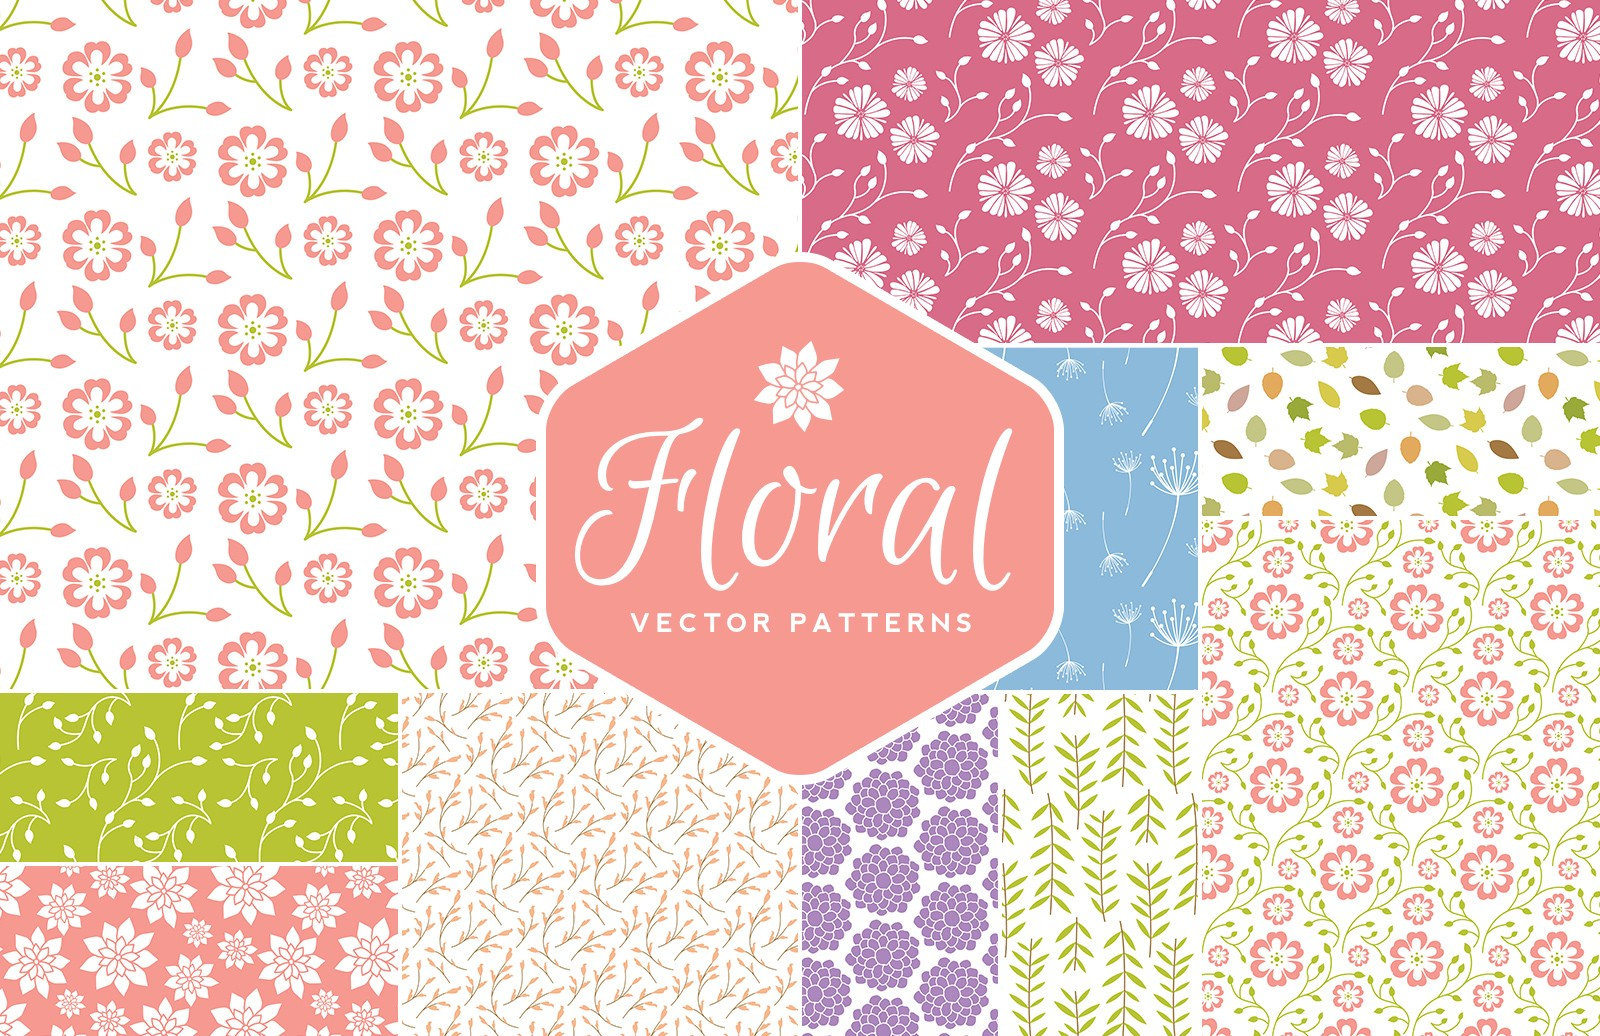 Seamless Vector Floral Patterns